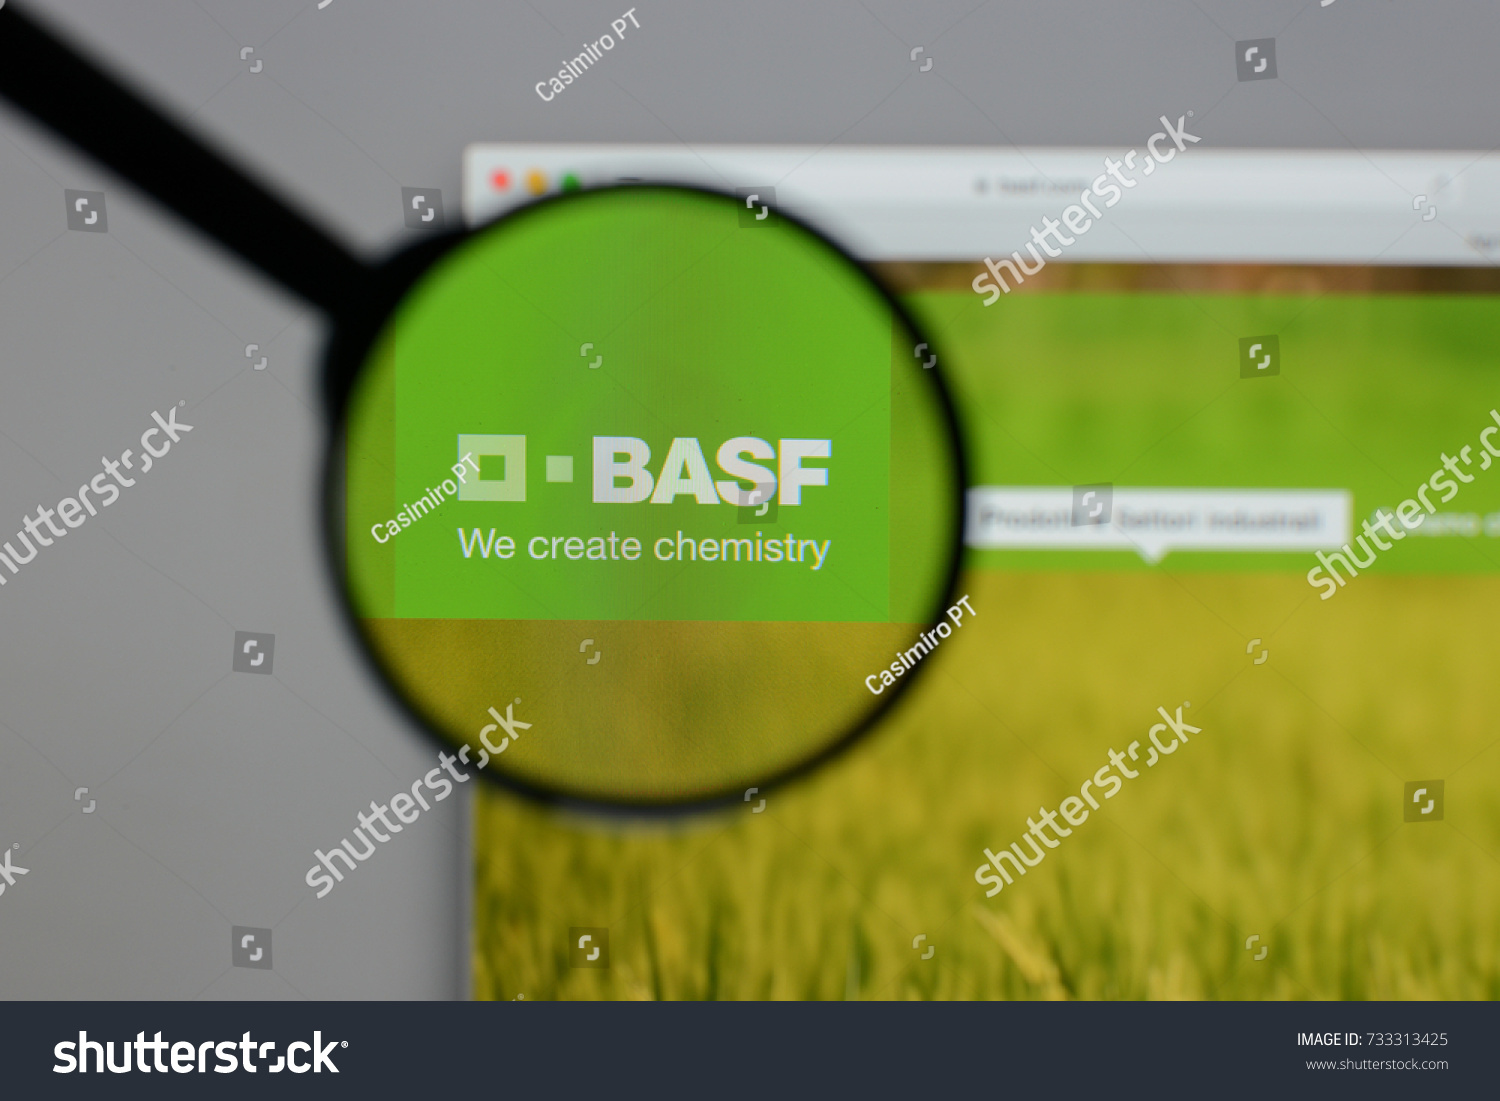 Milan Italy August 10 2017 Basf Stock Photo Edit Now 733313425